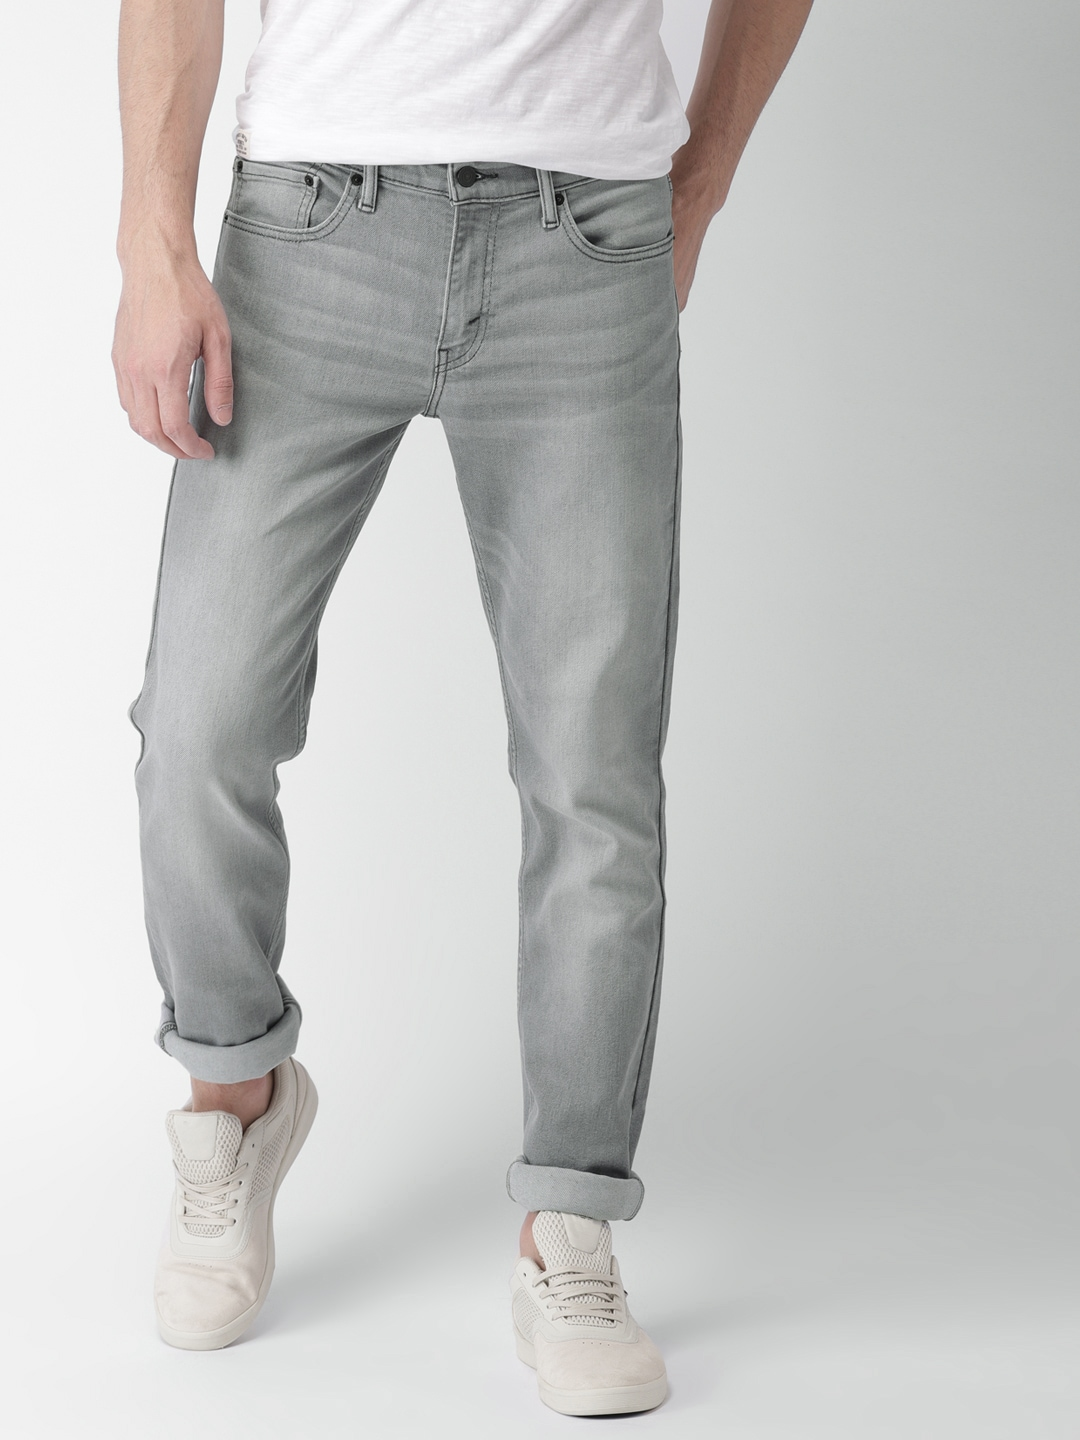 9ce8ce6928af Levis Grey Jeans - Buy Levis Grey Jeans online in India